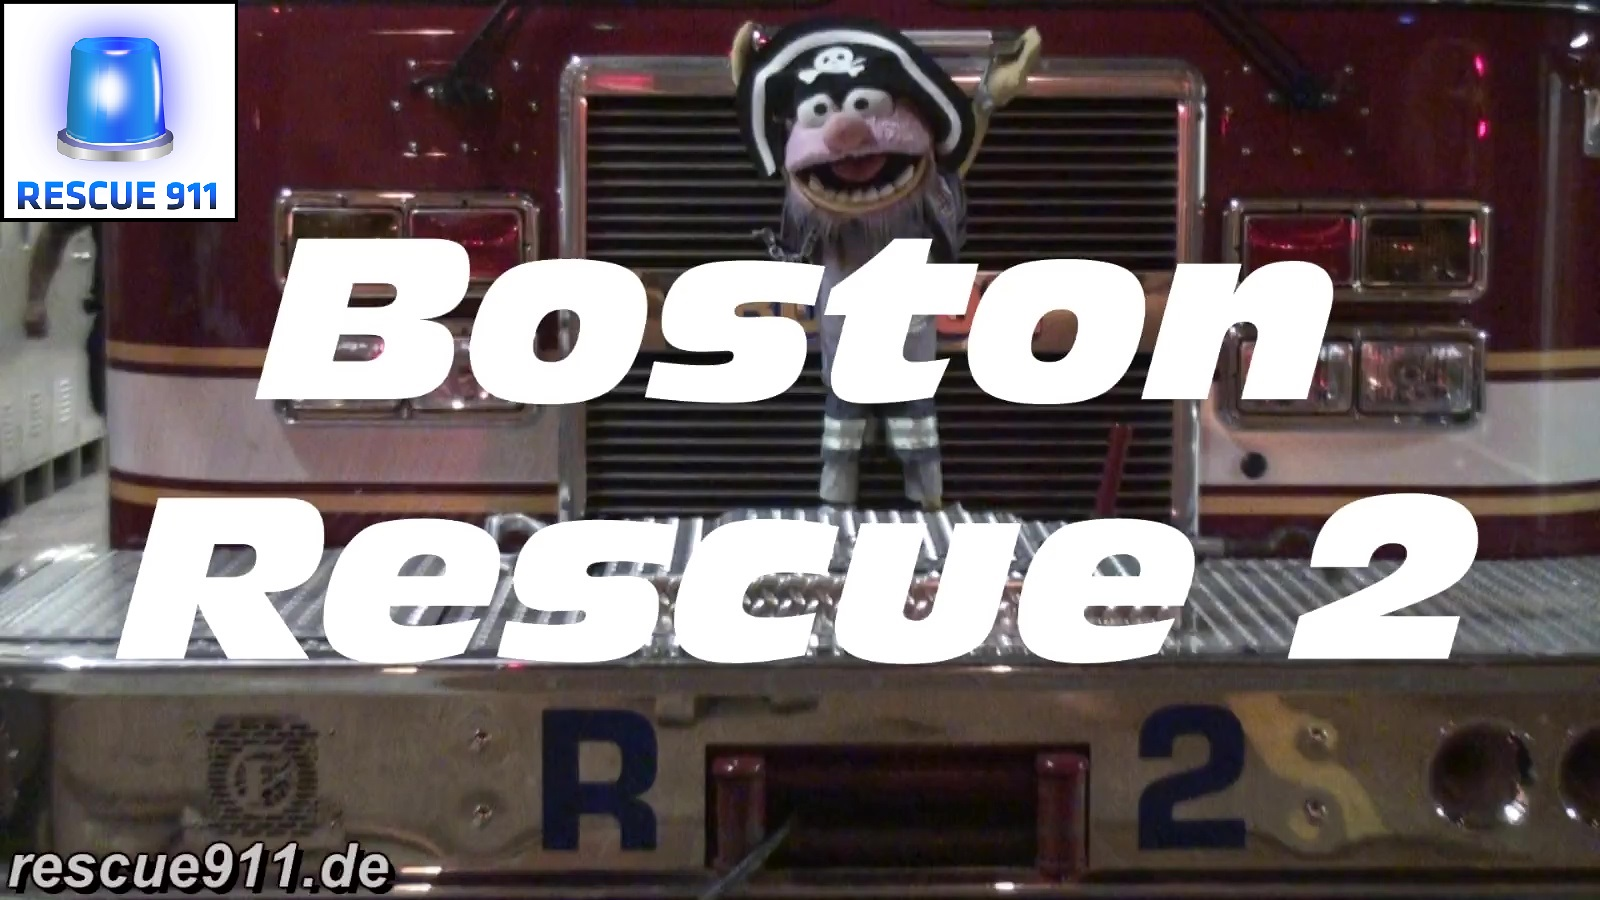 INSIDE - Rescue 2 Boston Fire Department (stream)